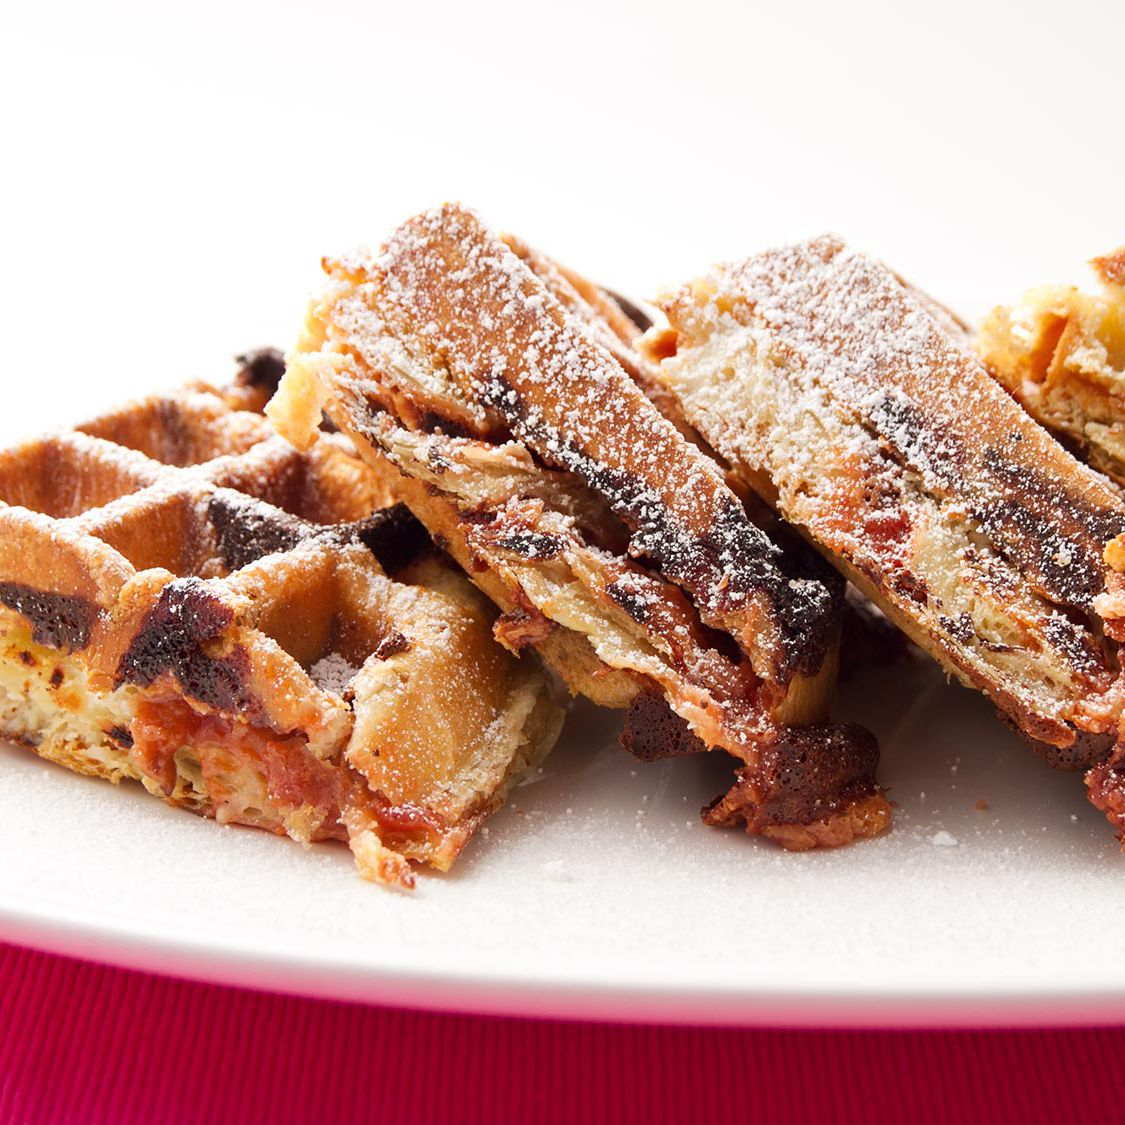 Guava and Cream Cheese Puff-Pastry Waffle Recipe